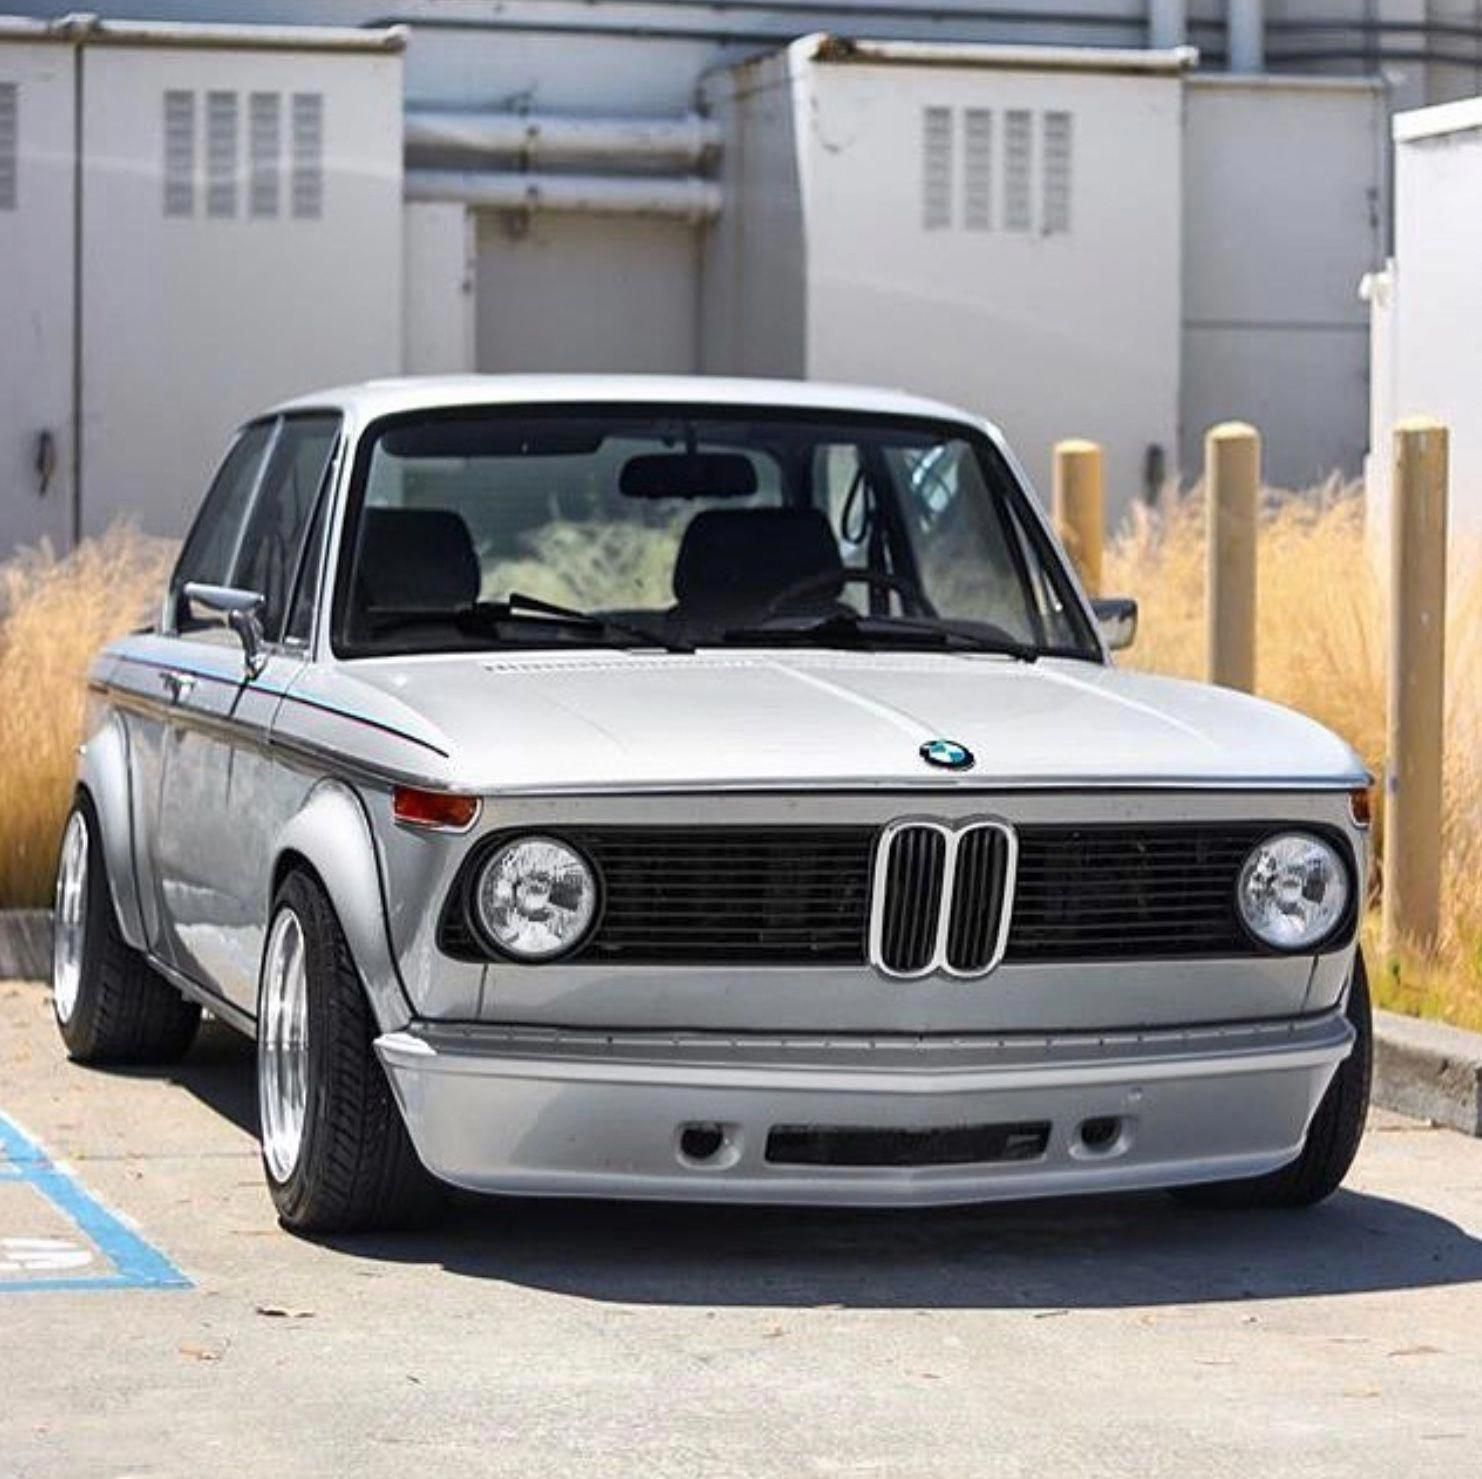 Used Bmw X5 Cars For Sale In South Africa With Images Cars For